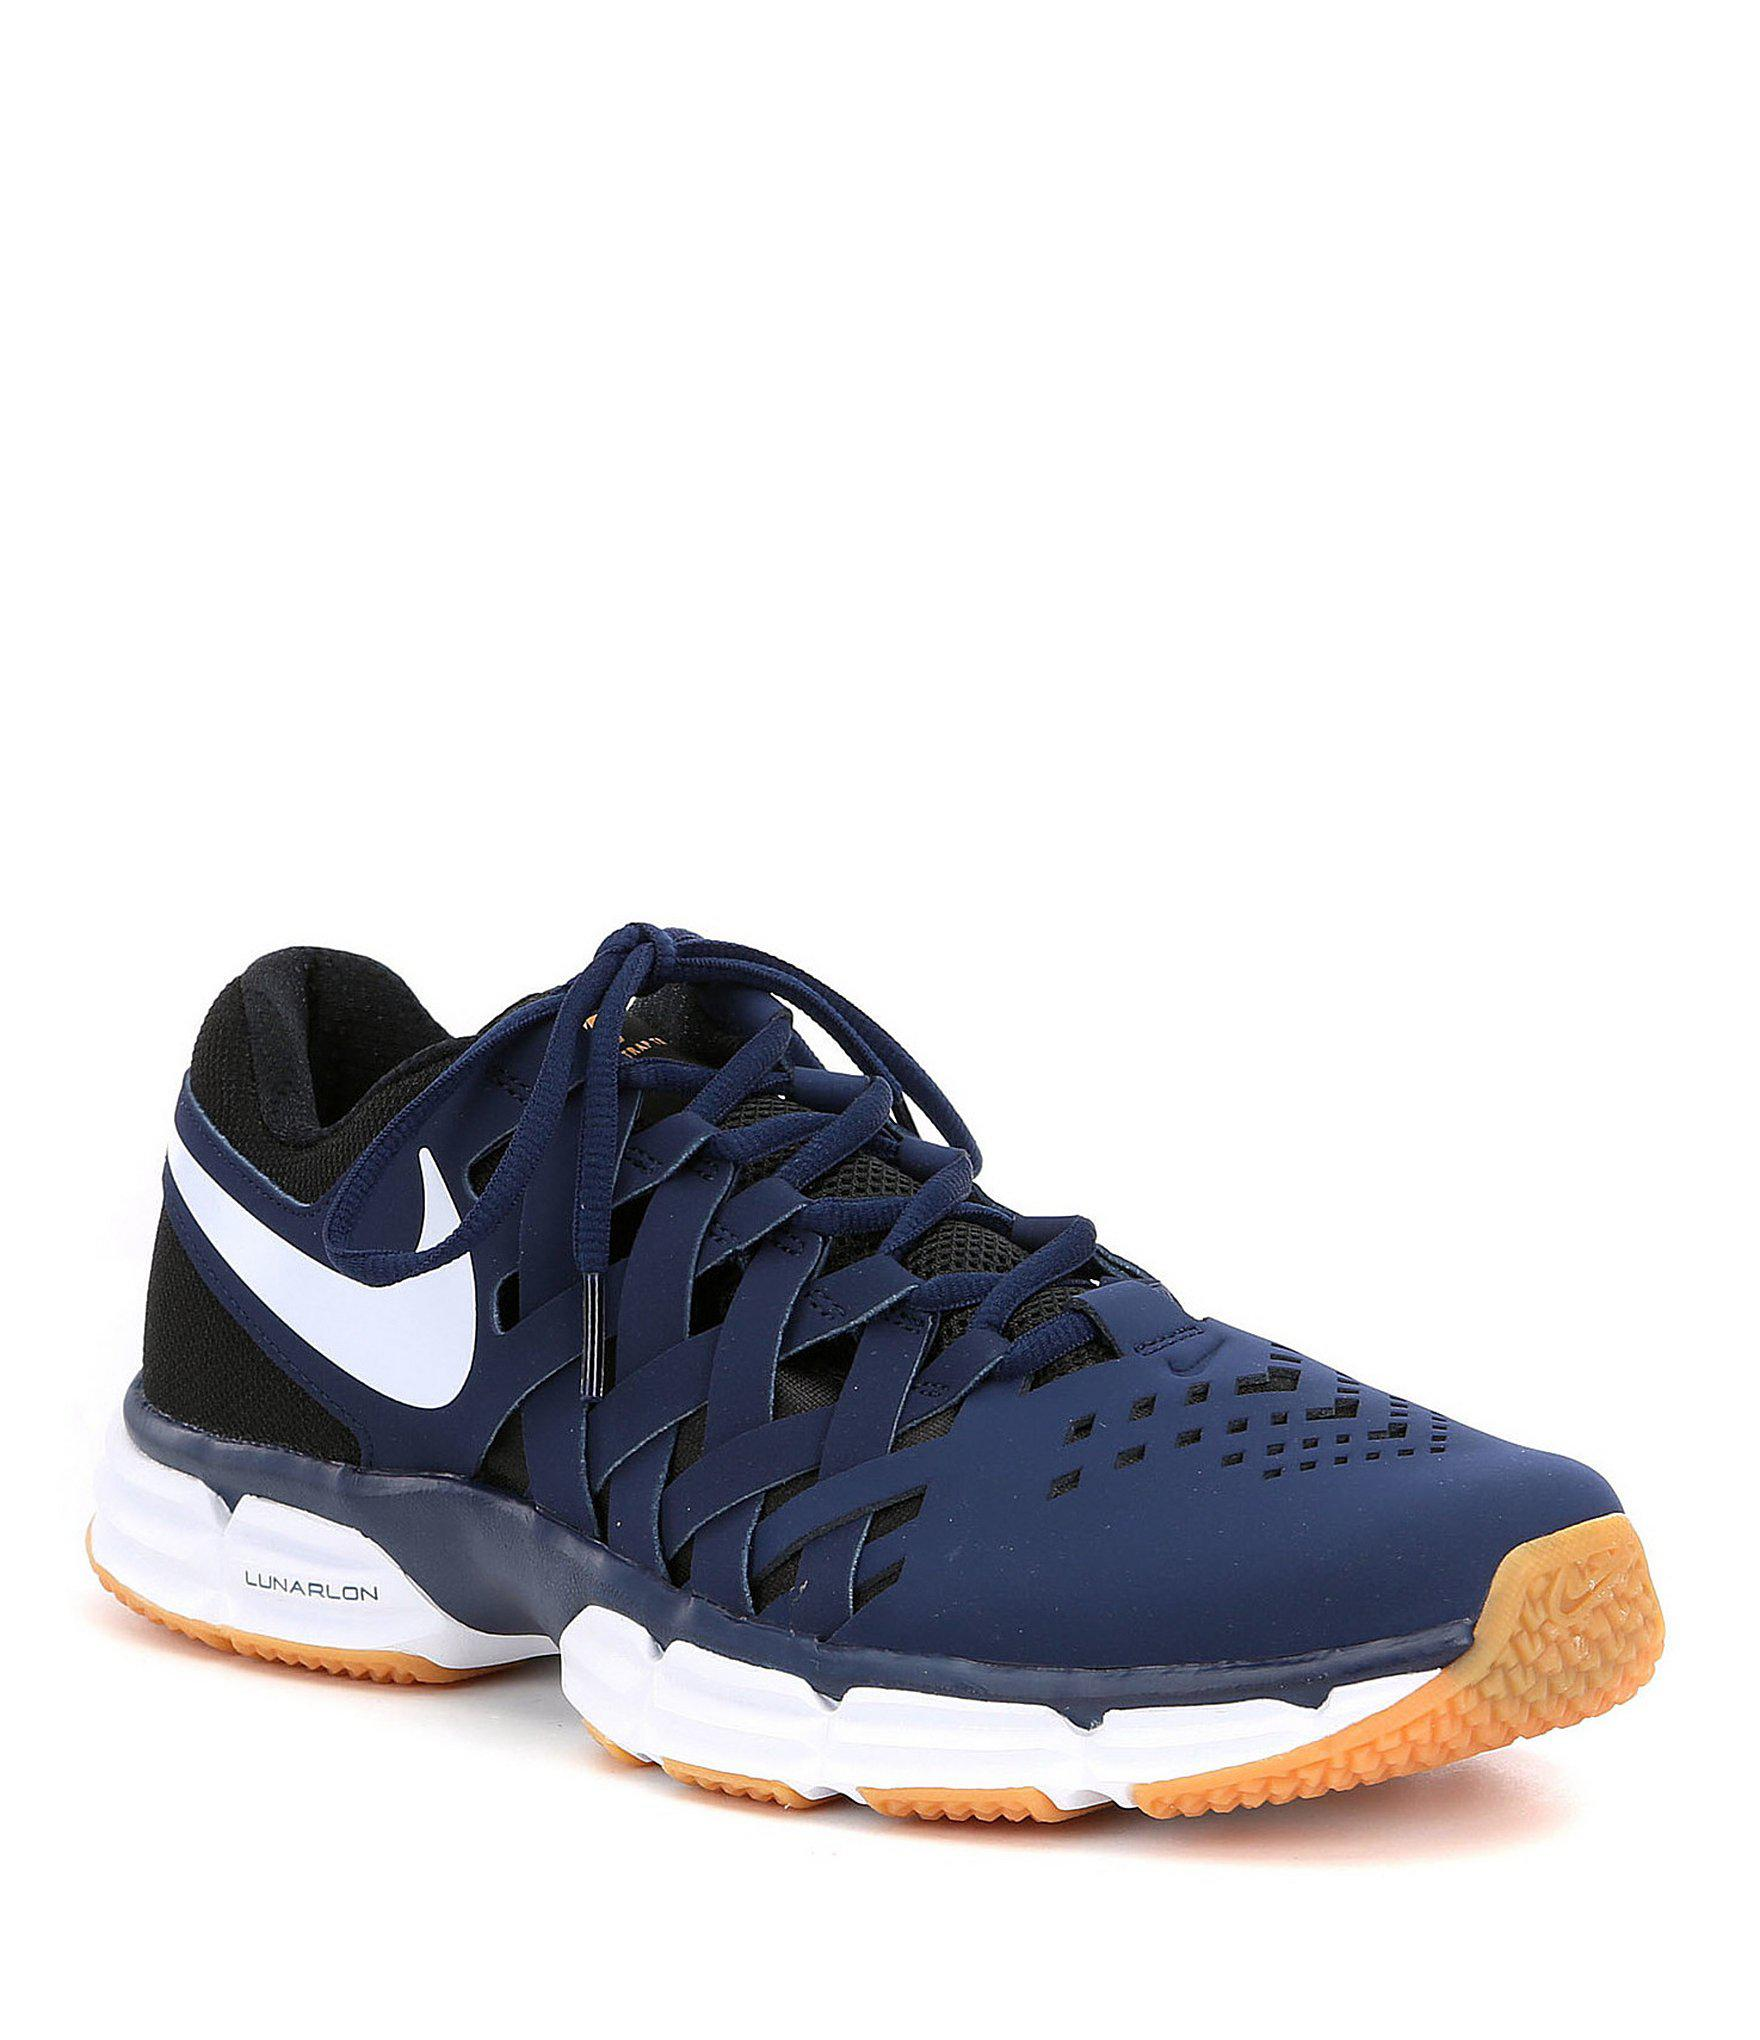 ... los angeles Lyst - Nike Men ́s Lunar Fingertrap Training Shoes in Red  for Men . ... 3397490a8